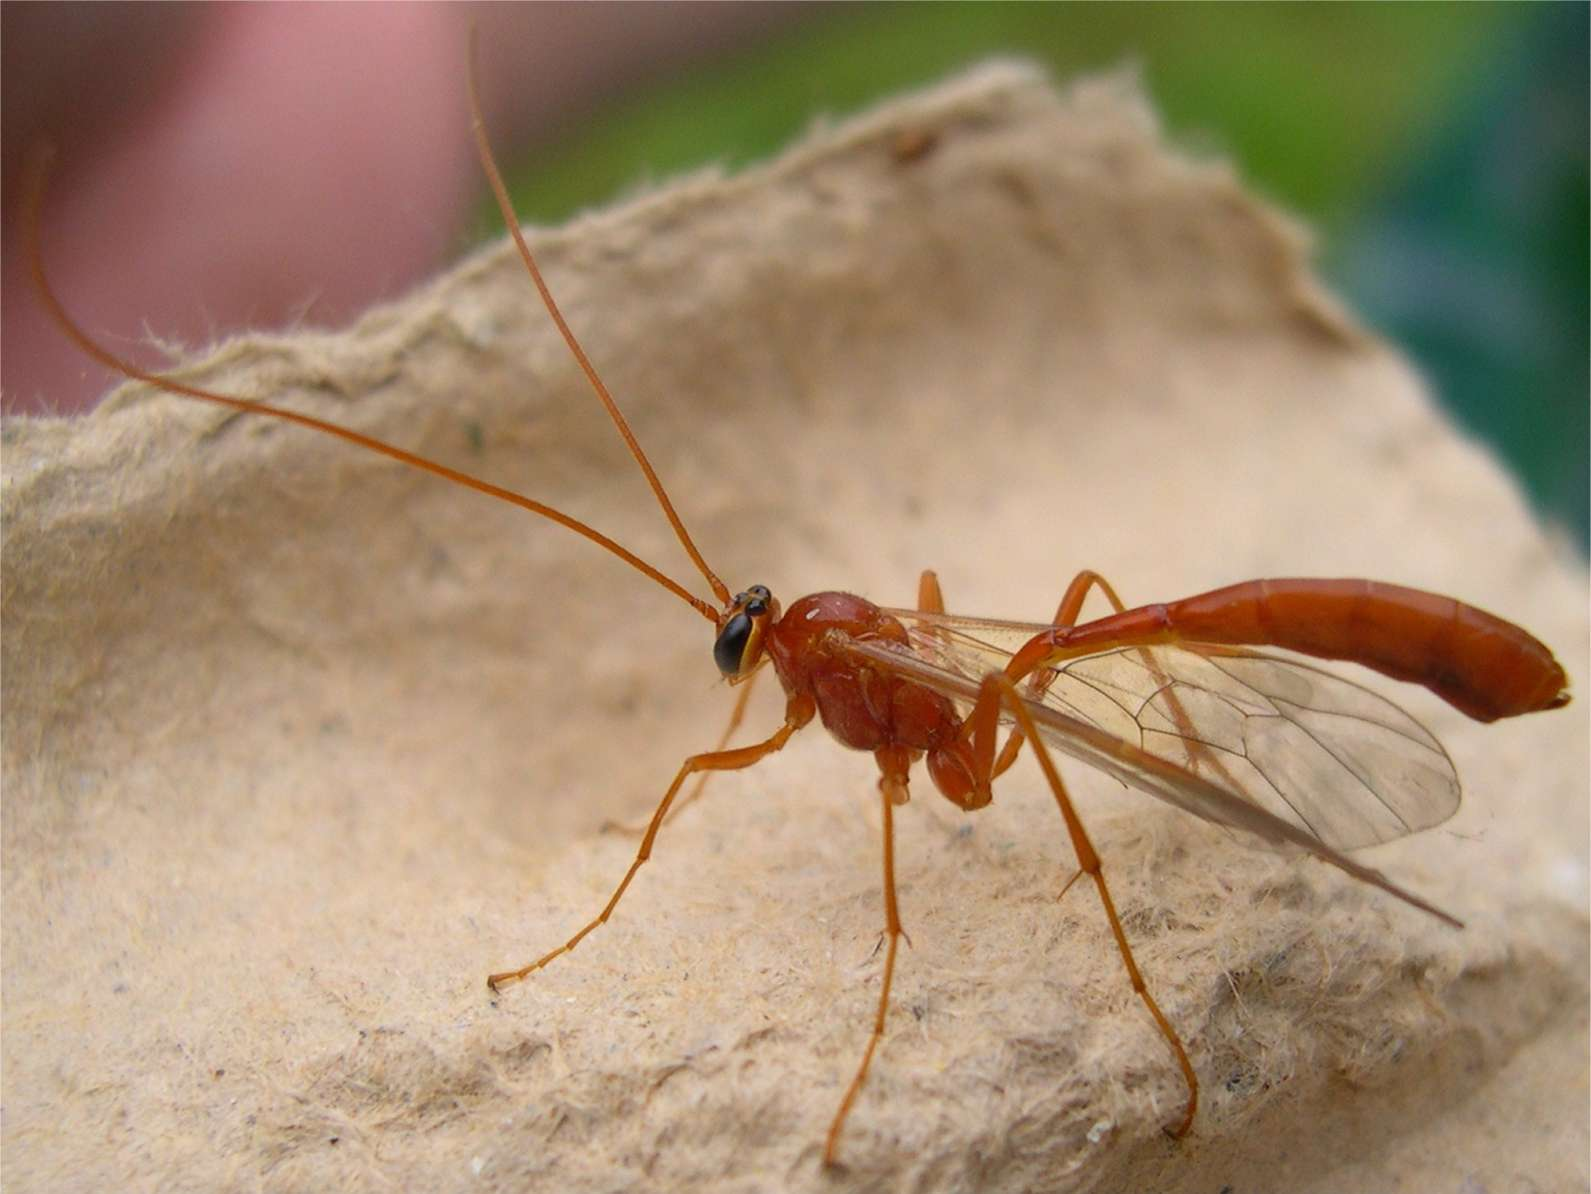 Red flying insect with a small stinger? | Yahoo Answers - photo#24